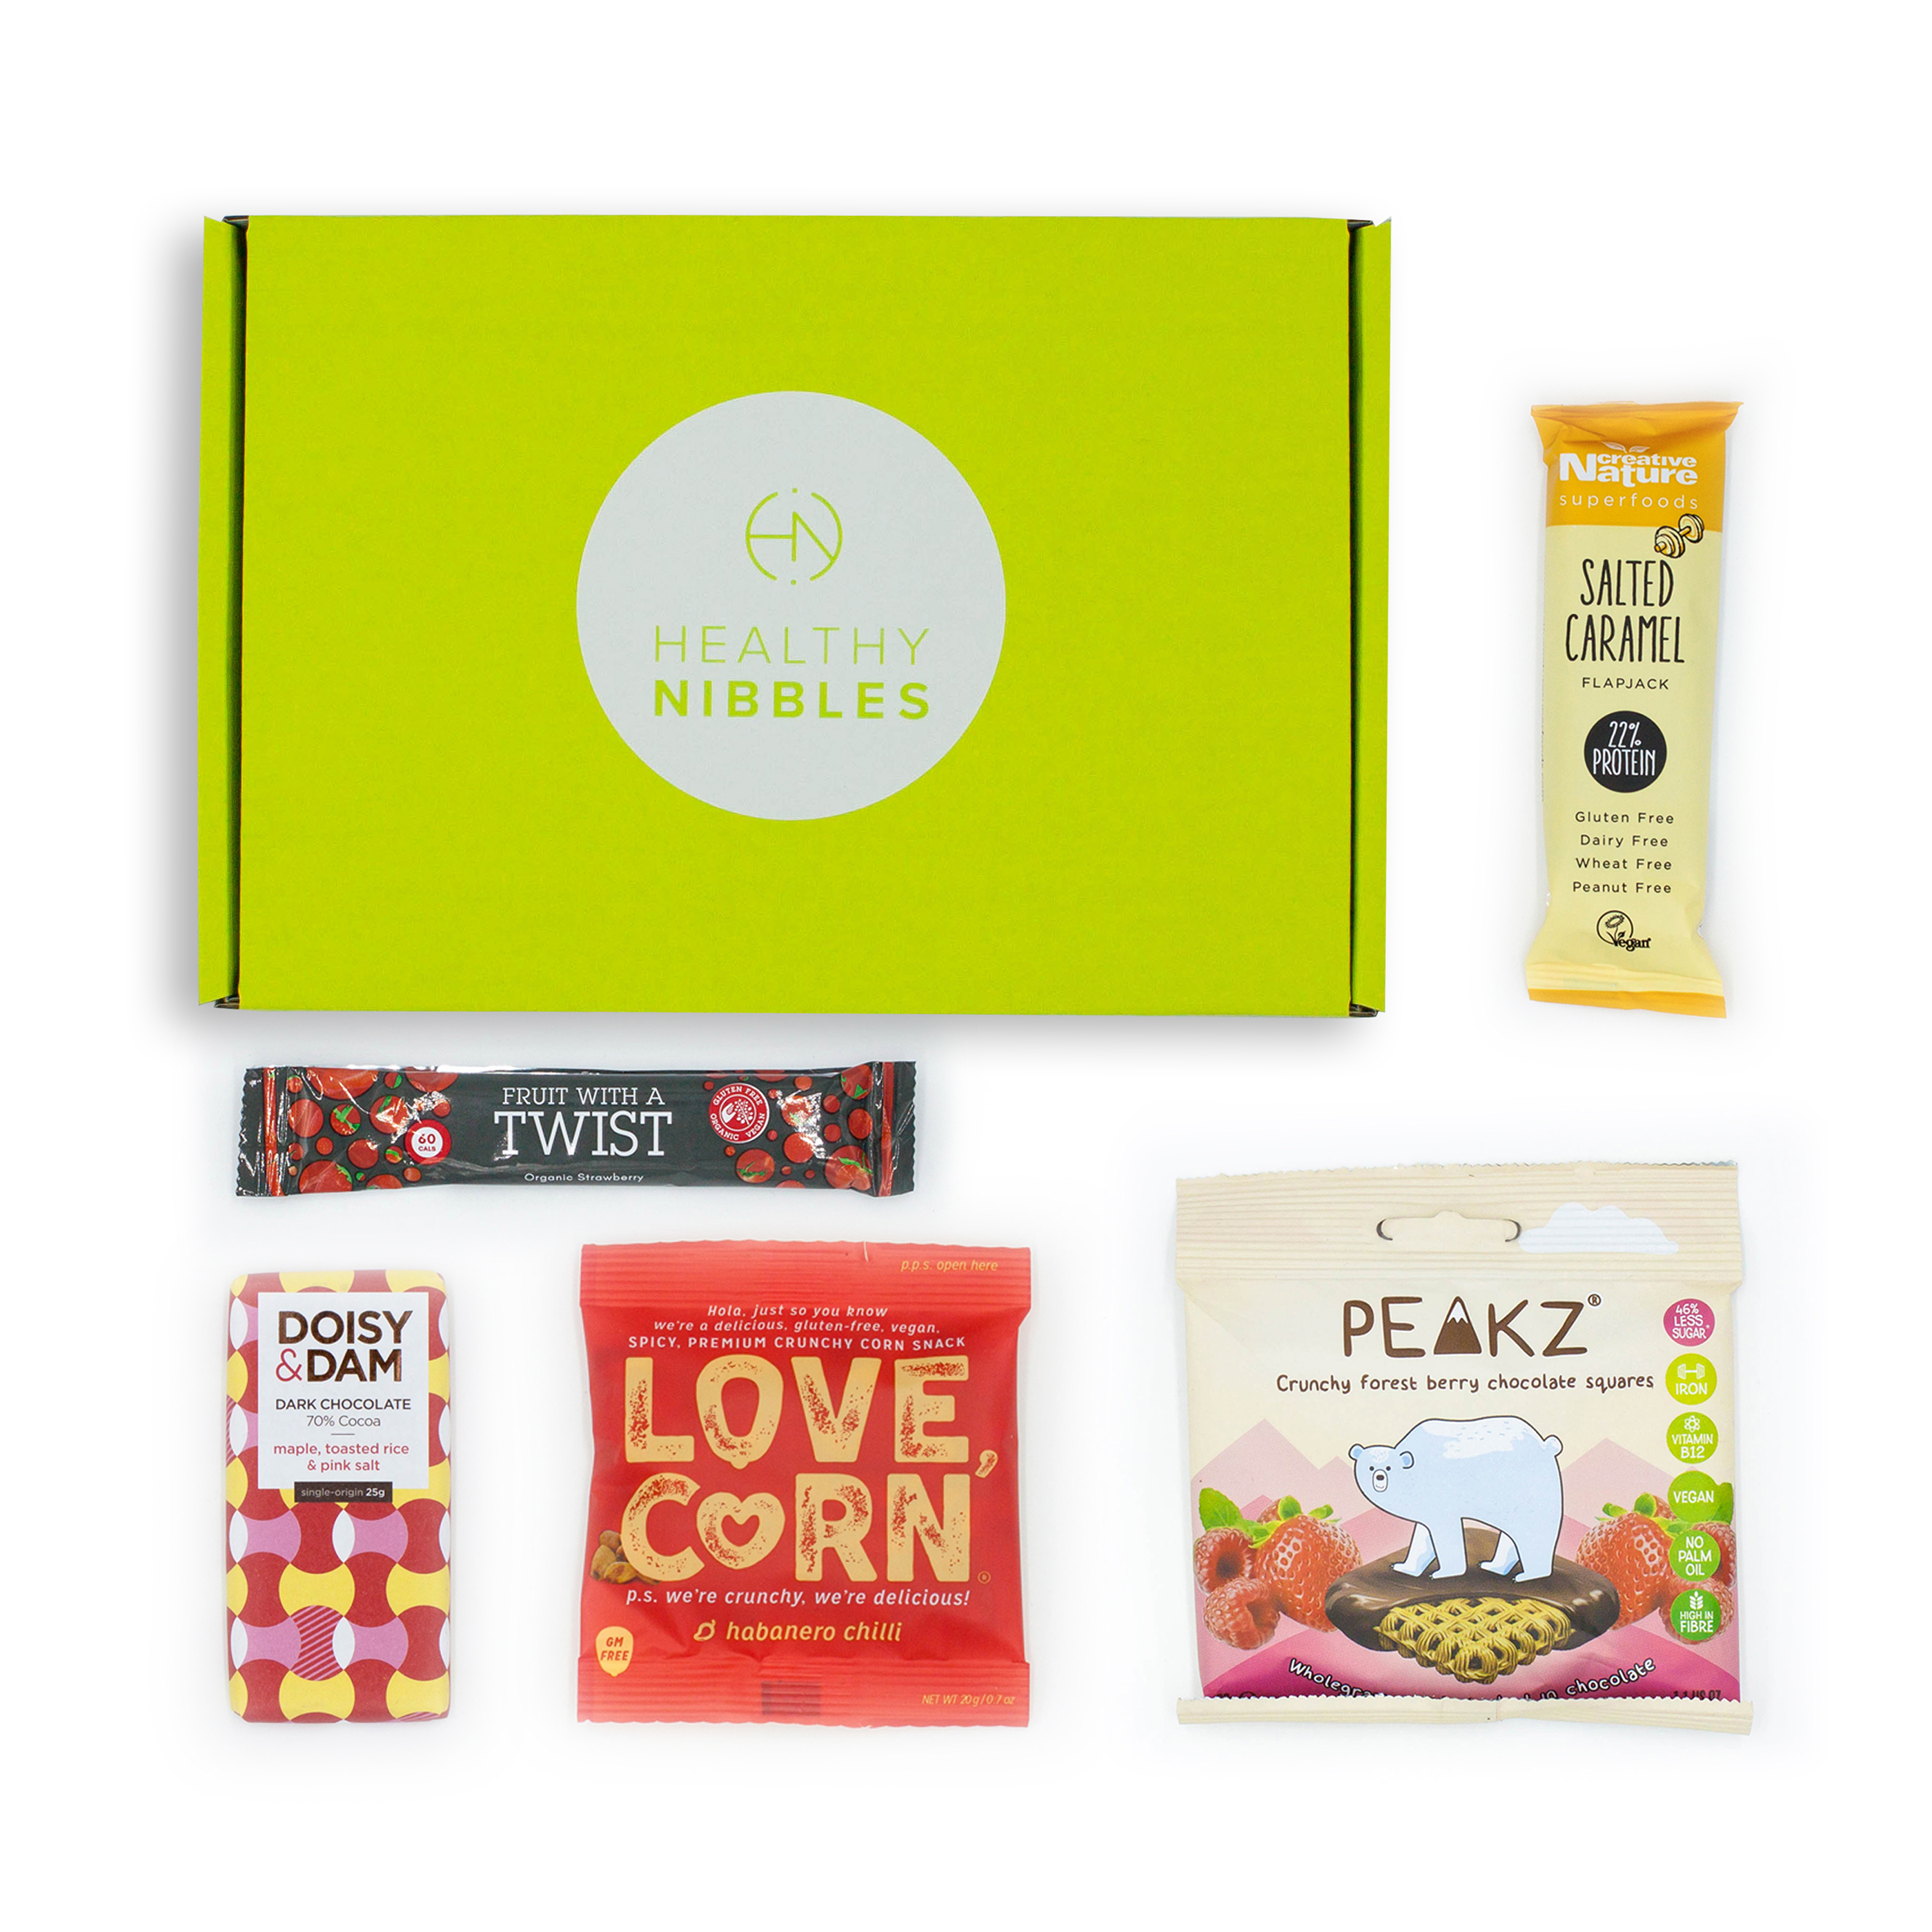 Limitless Healthy Nibbles Vegan Snack 5 Piece Mini Box Ref Vegan5 *Up to 2-3 Day Leadtime*